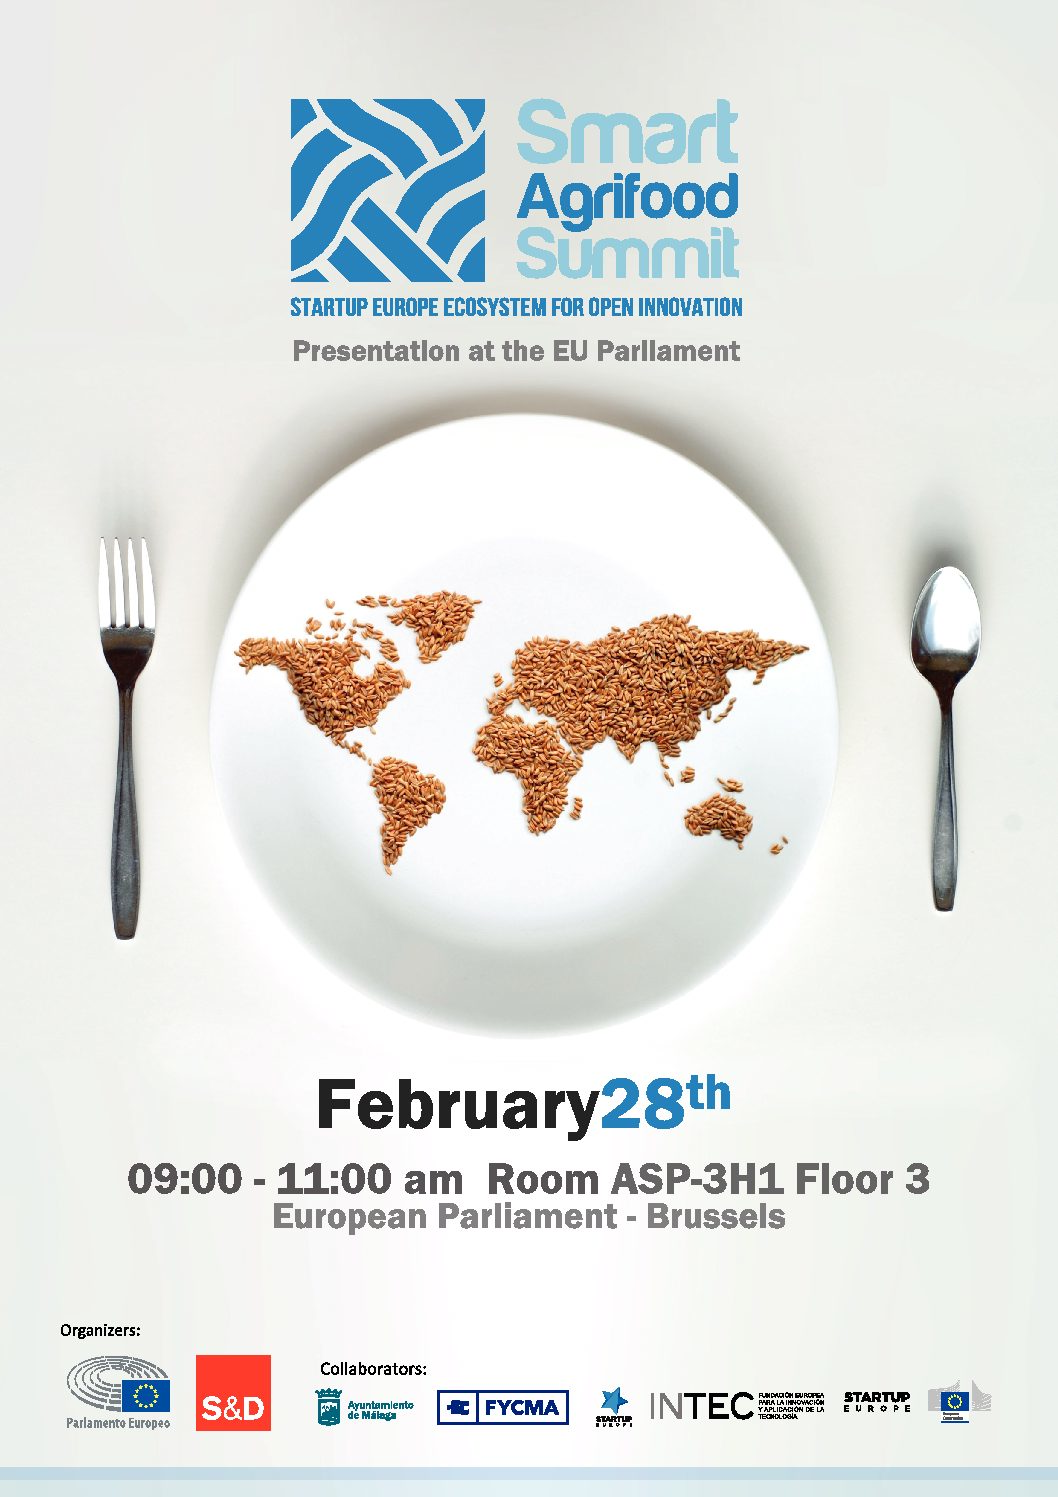 + Smart Agrifood Summit. Presentation at the Europe Parliament. Brussels. 28 th February